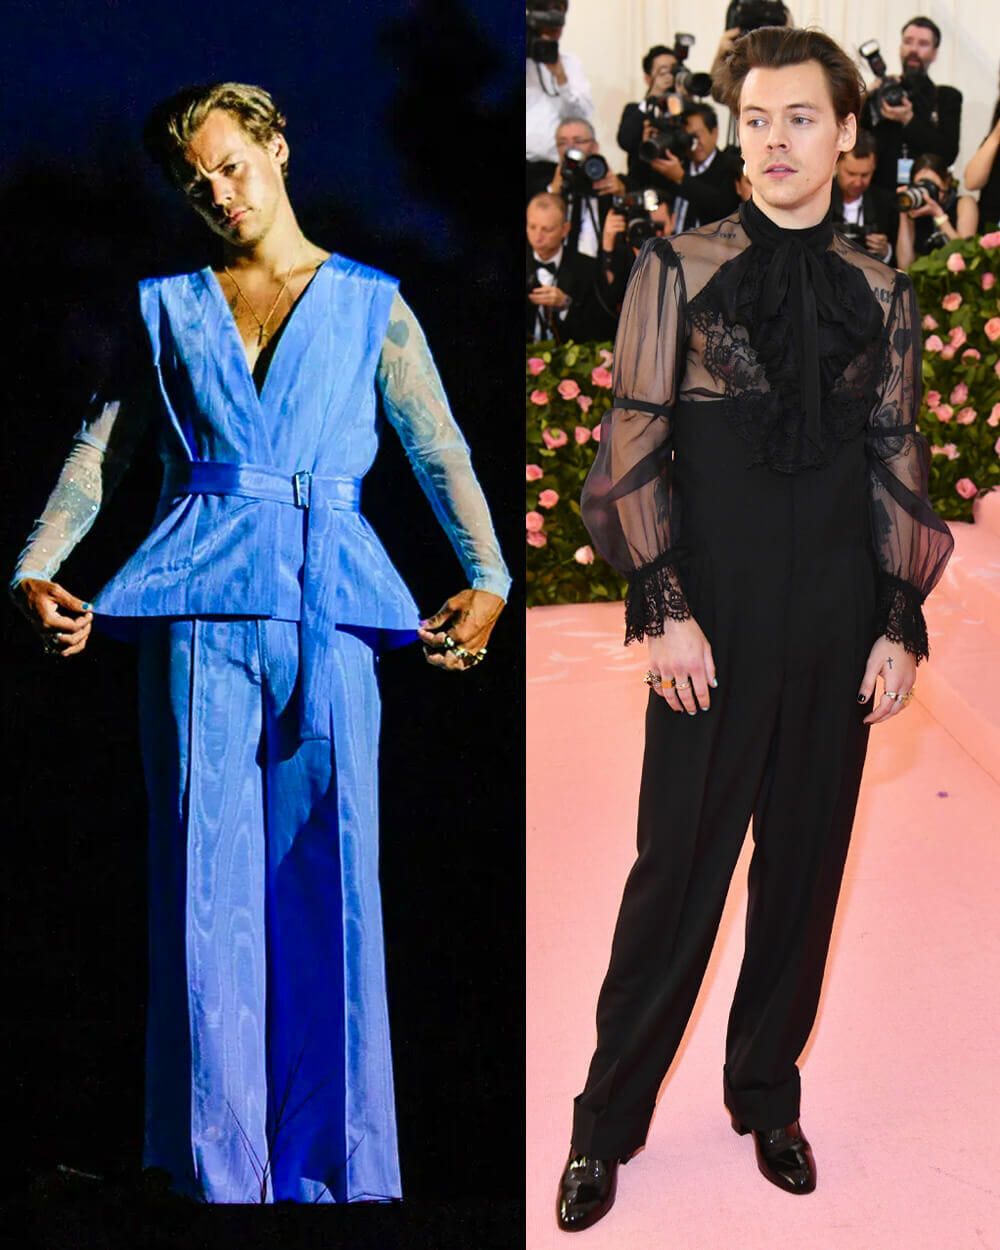 Harry Styles androgynous look